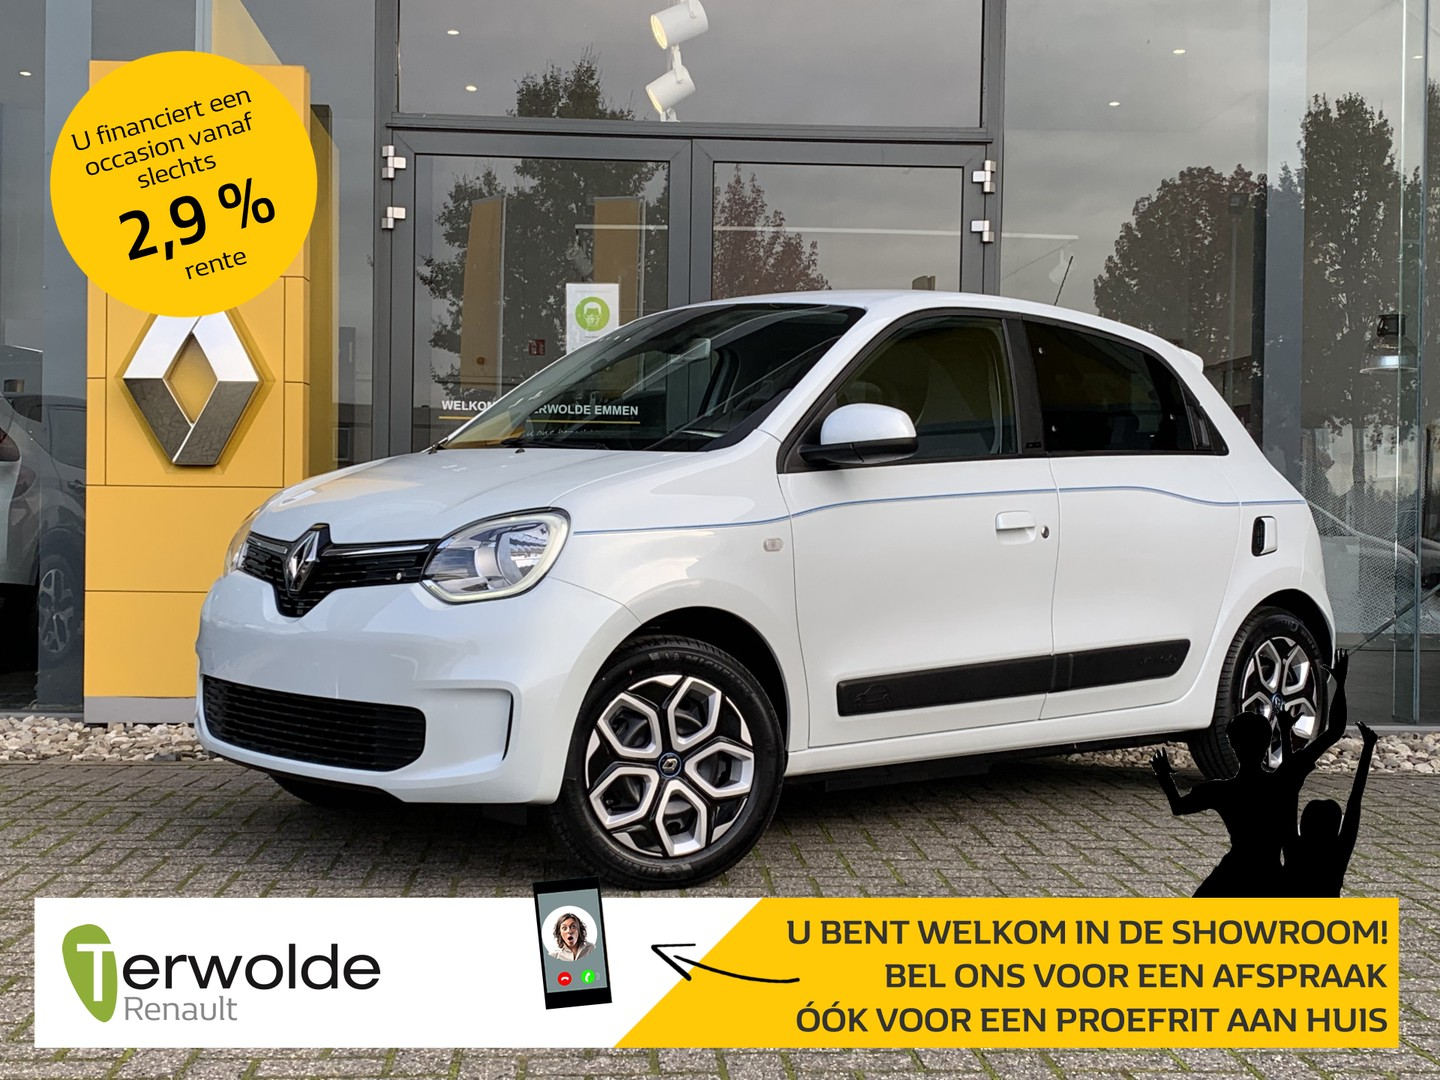 Renault Twingo Z.e. r80 collection